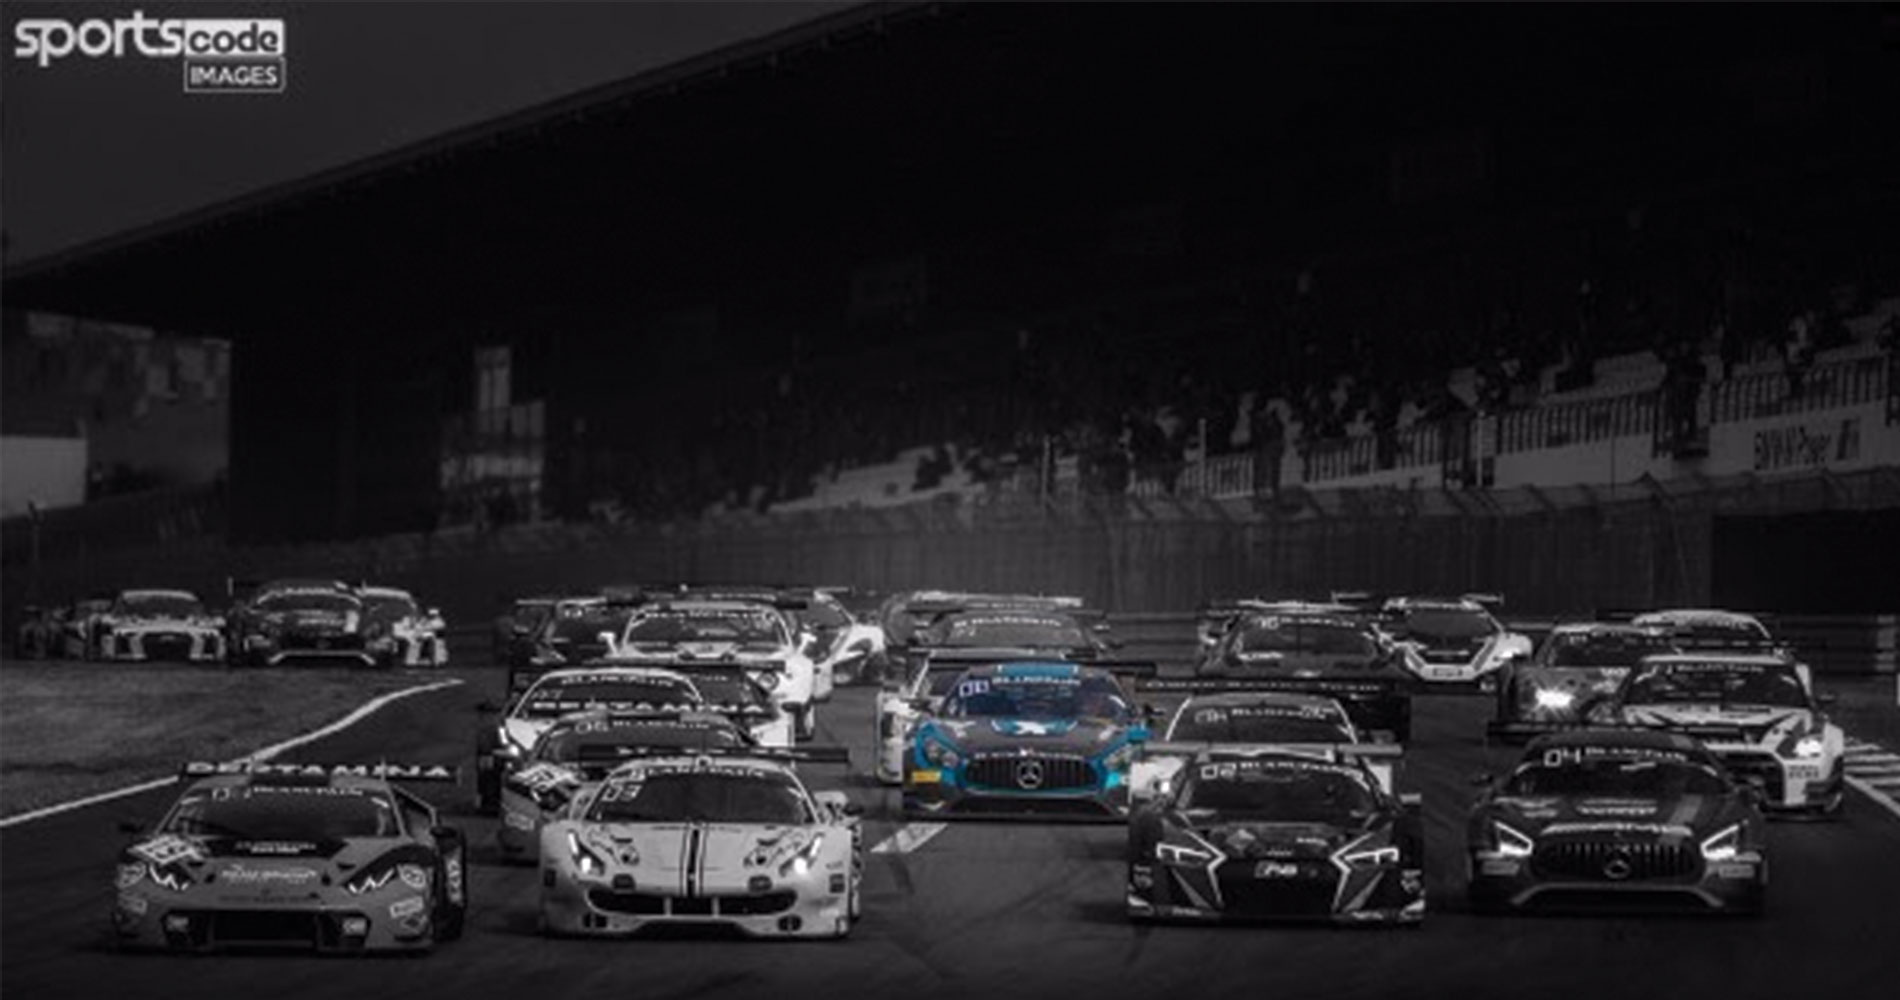 puncture-thwarts-christodoulou-in-blancpain-endurance-finale-motorsportdays-tesy-days-2